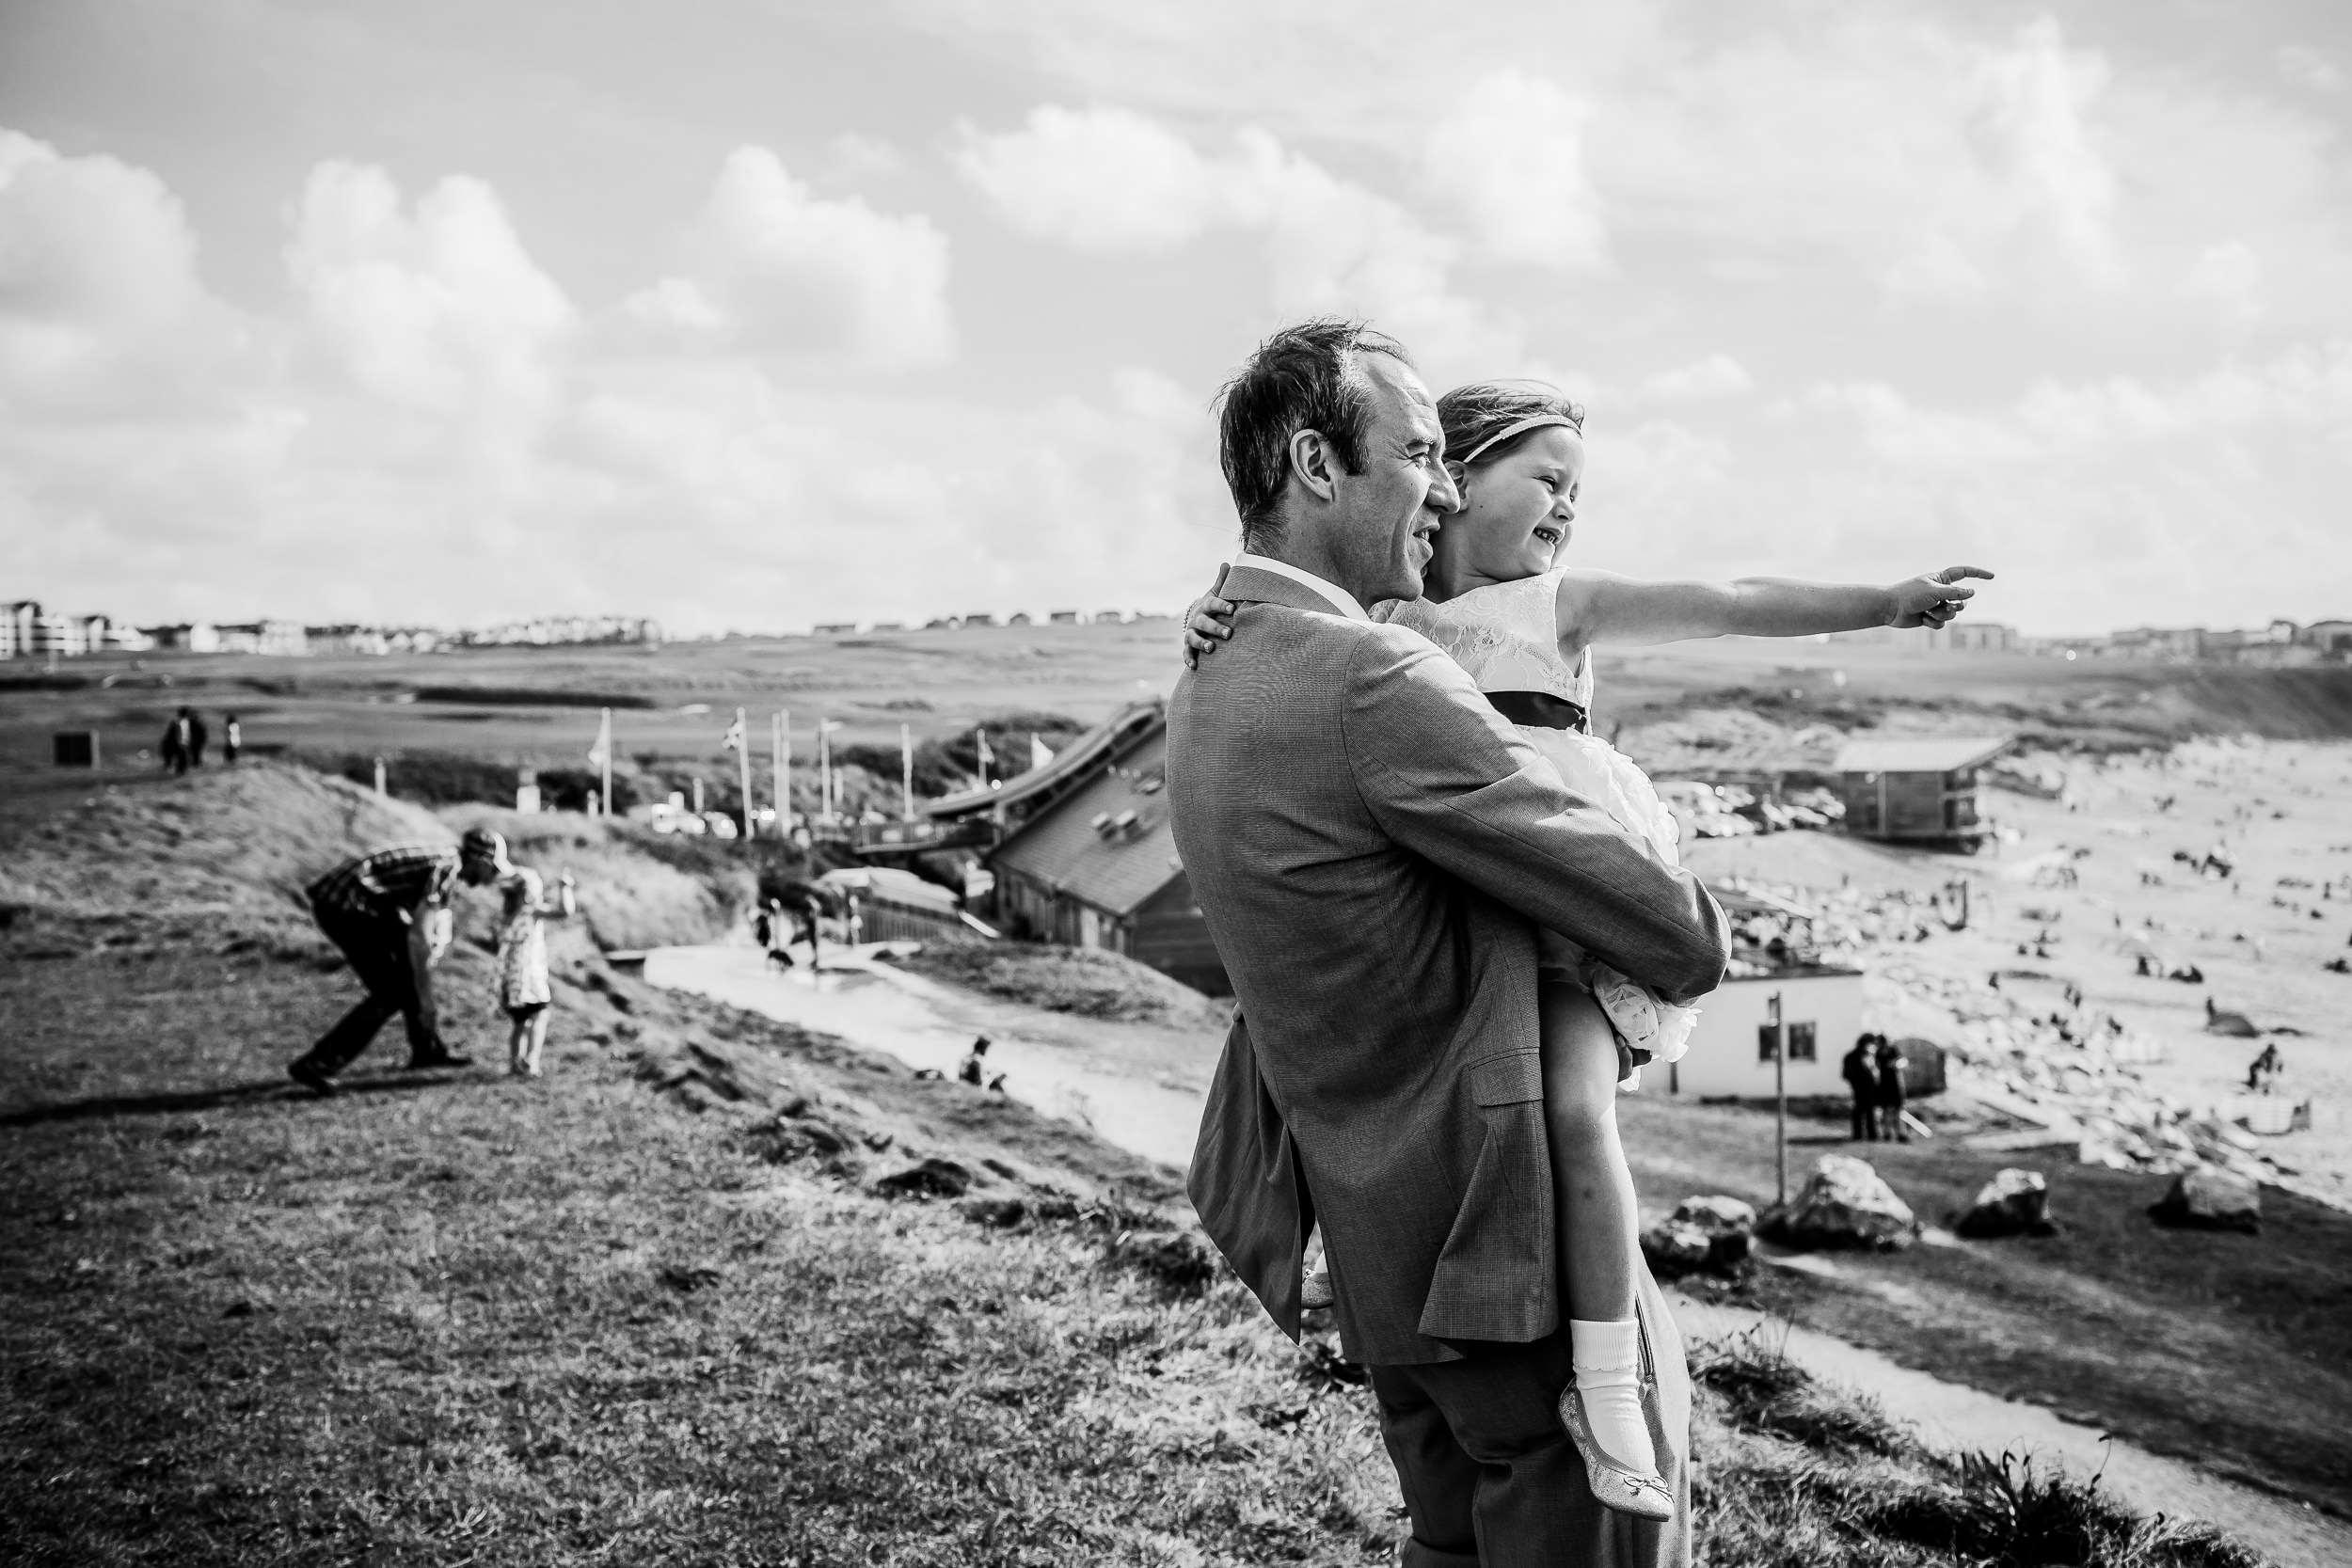 Headlands wedding photography - Newquay wedding photography - beach wedding